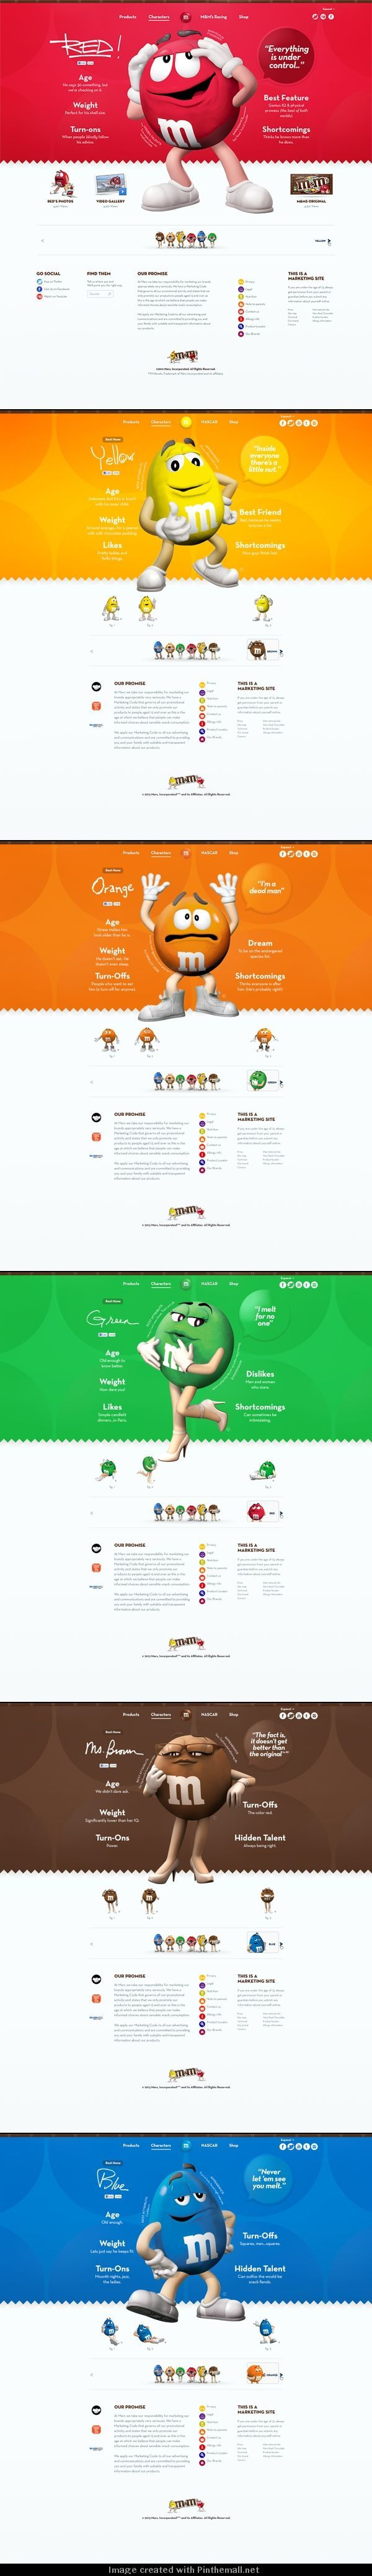 Cool Web Design on the Internet, M&M. #webdesign #webdevelopment #website @ http://www.pinterest.com/alfredchong/web-design/: